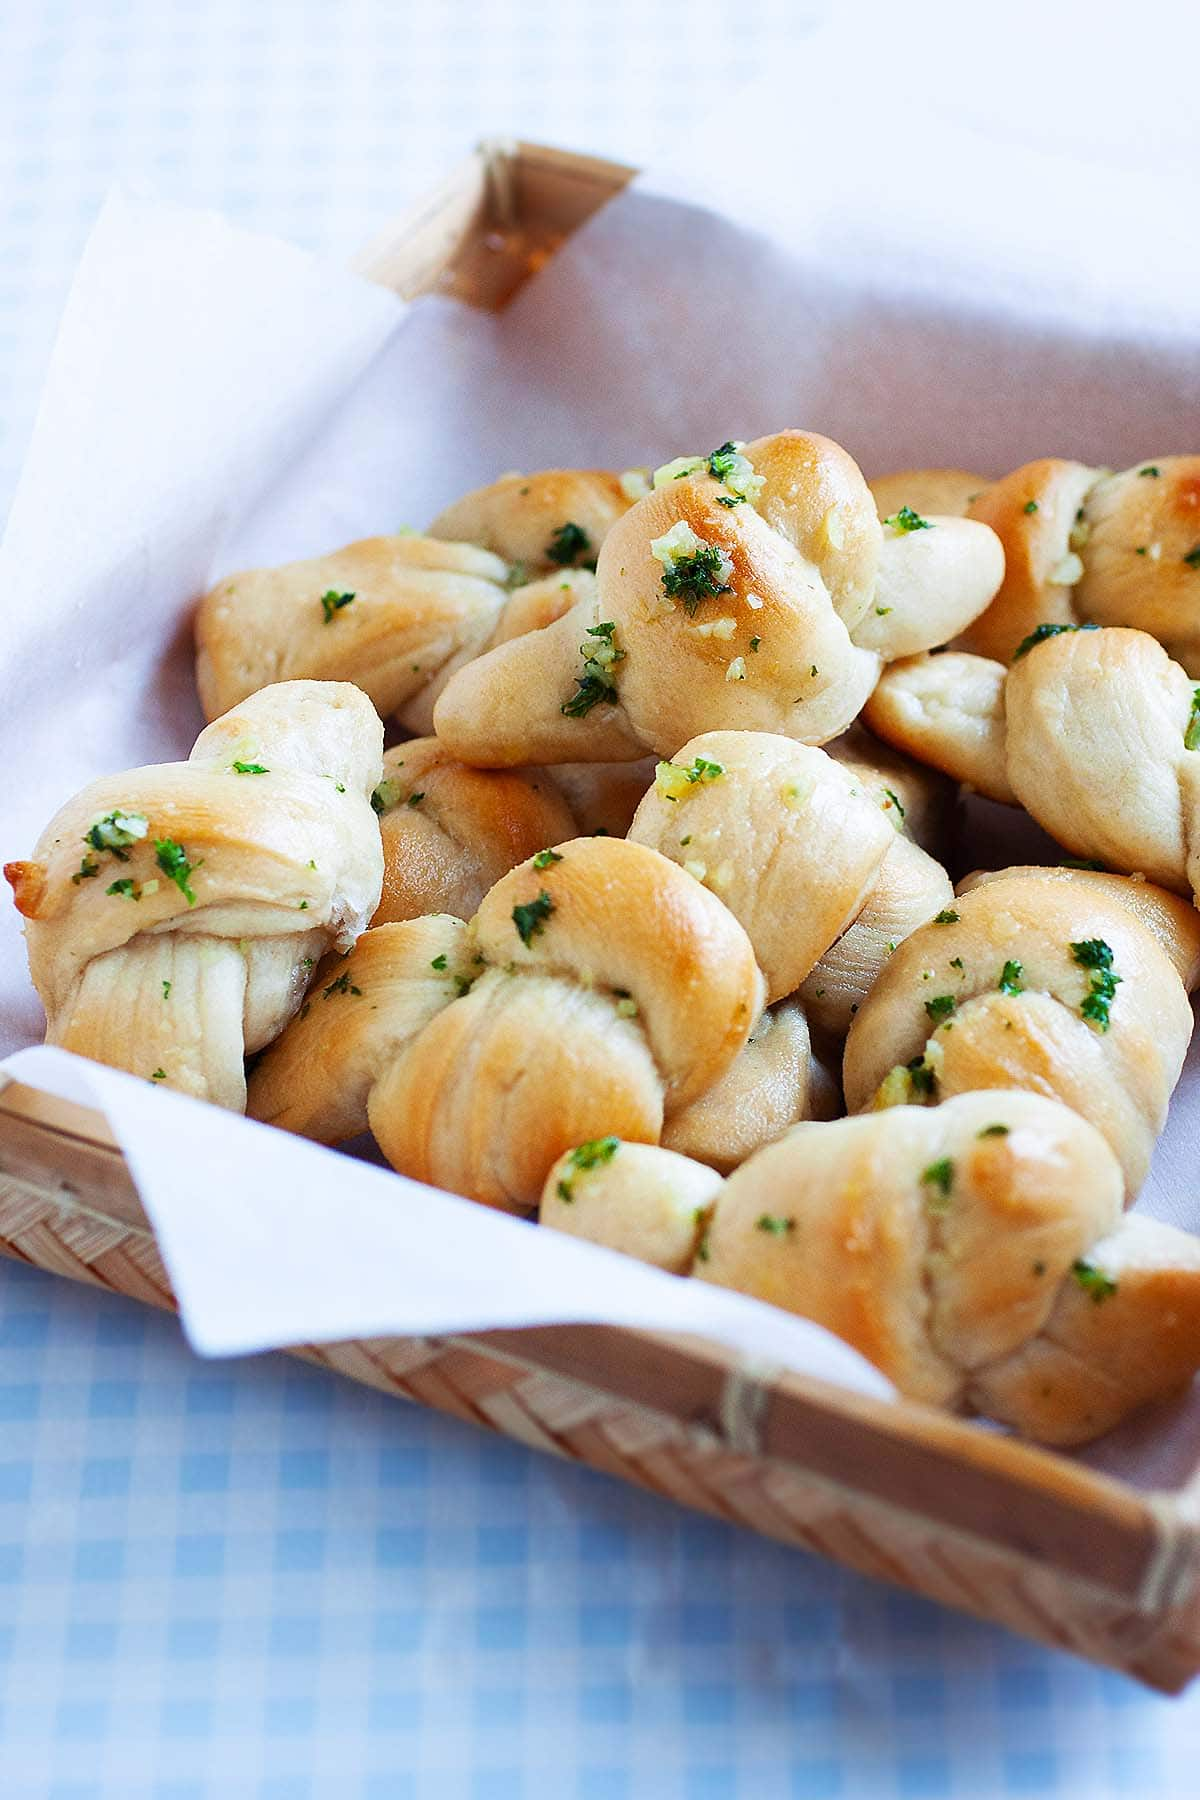 Garlic knots with pizza dough and garlic butter.